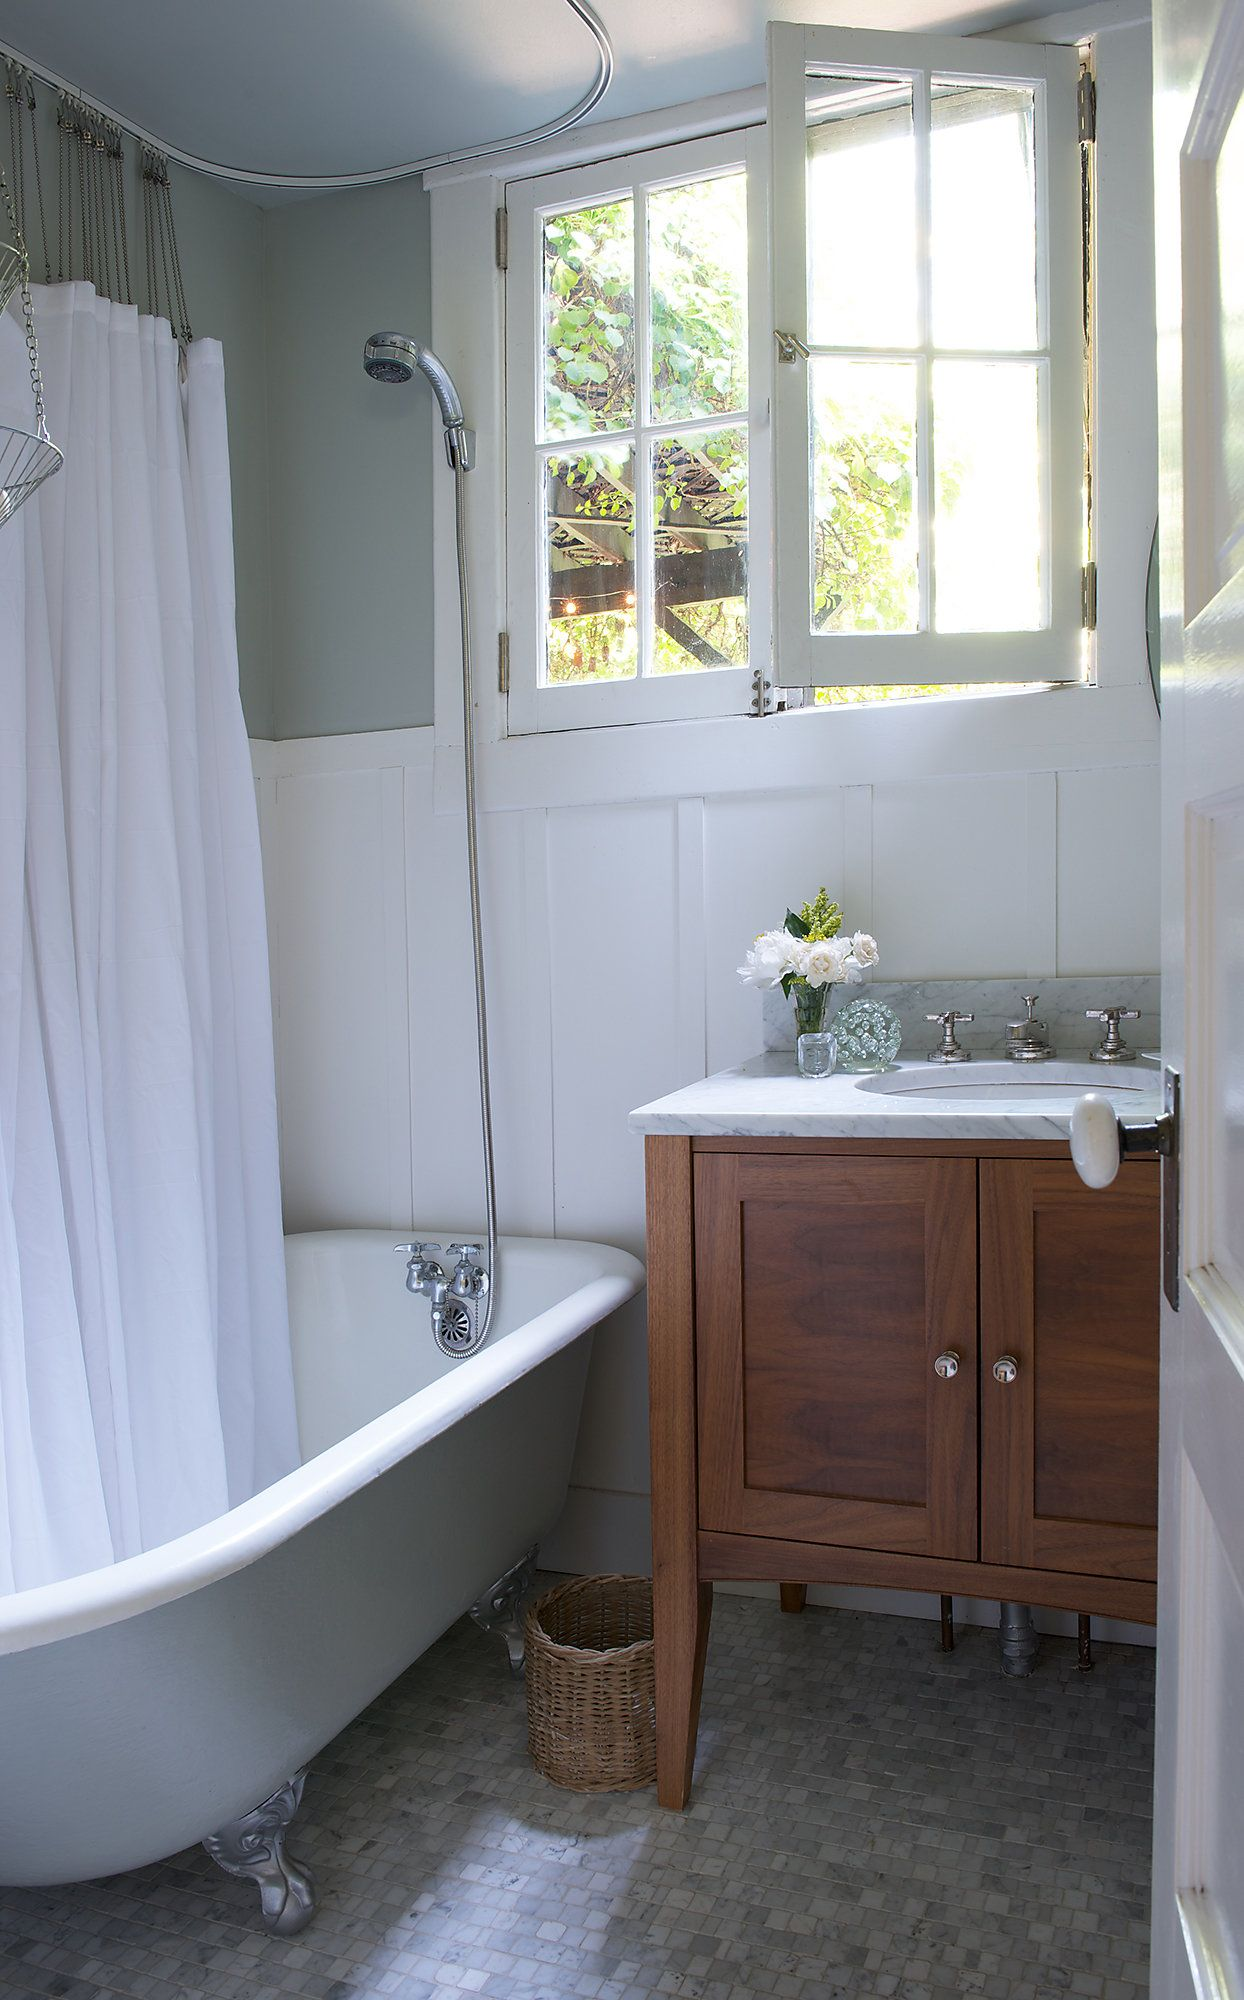 On Location | Downstairs bathroom, Tubs and Vanities